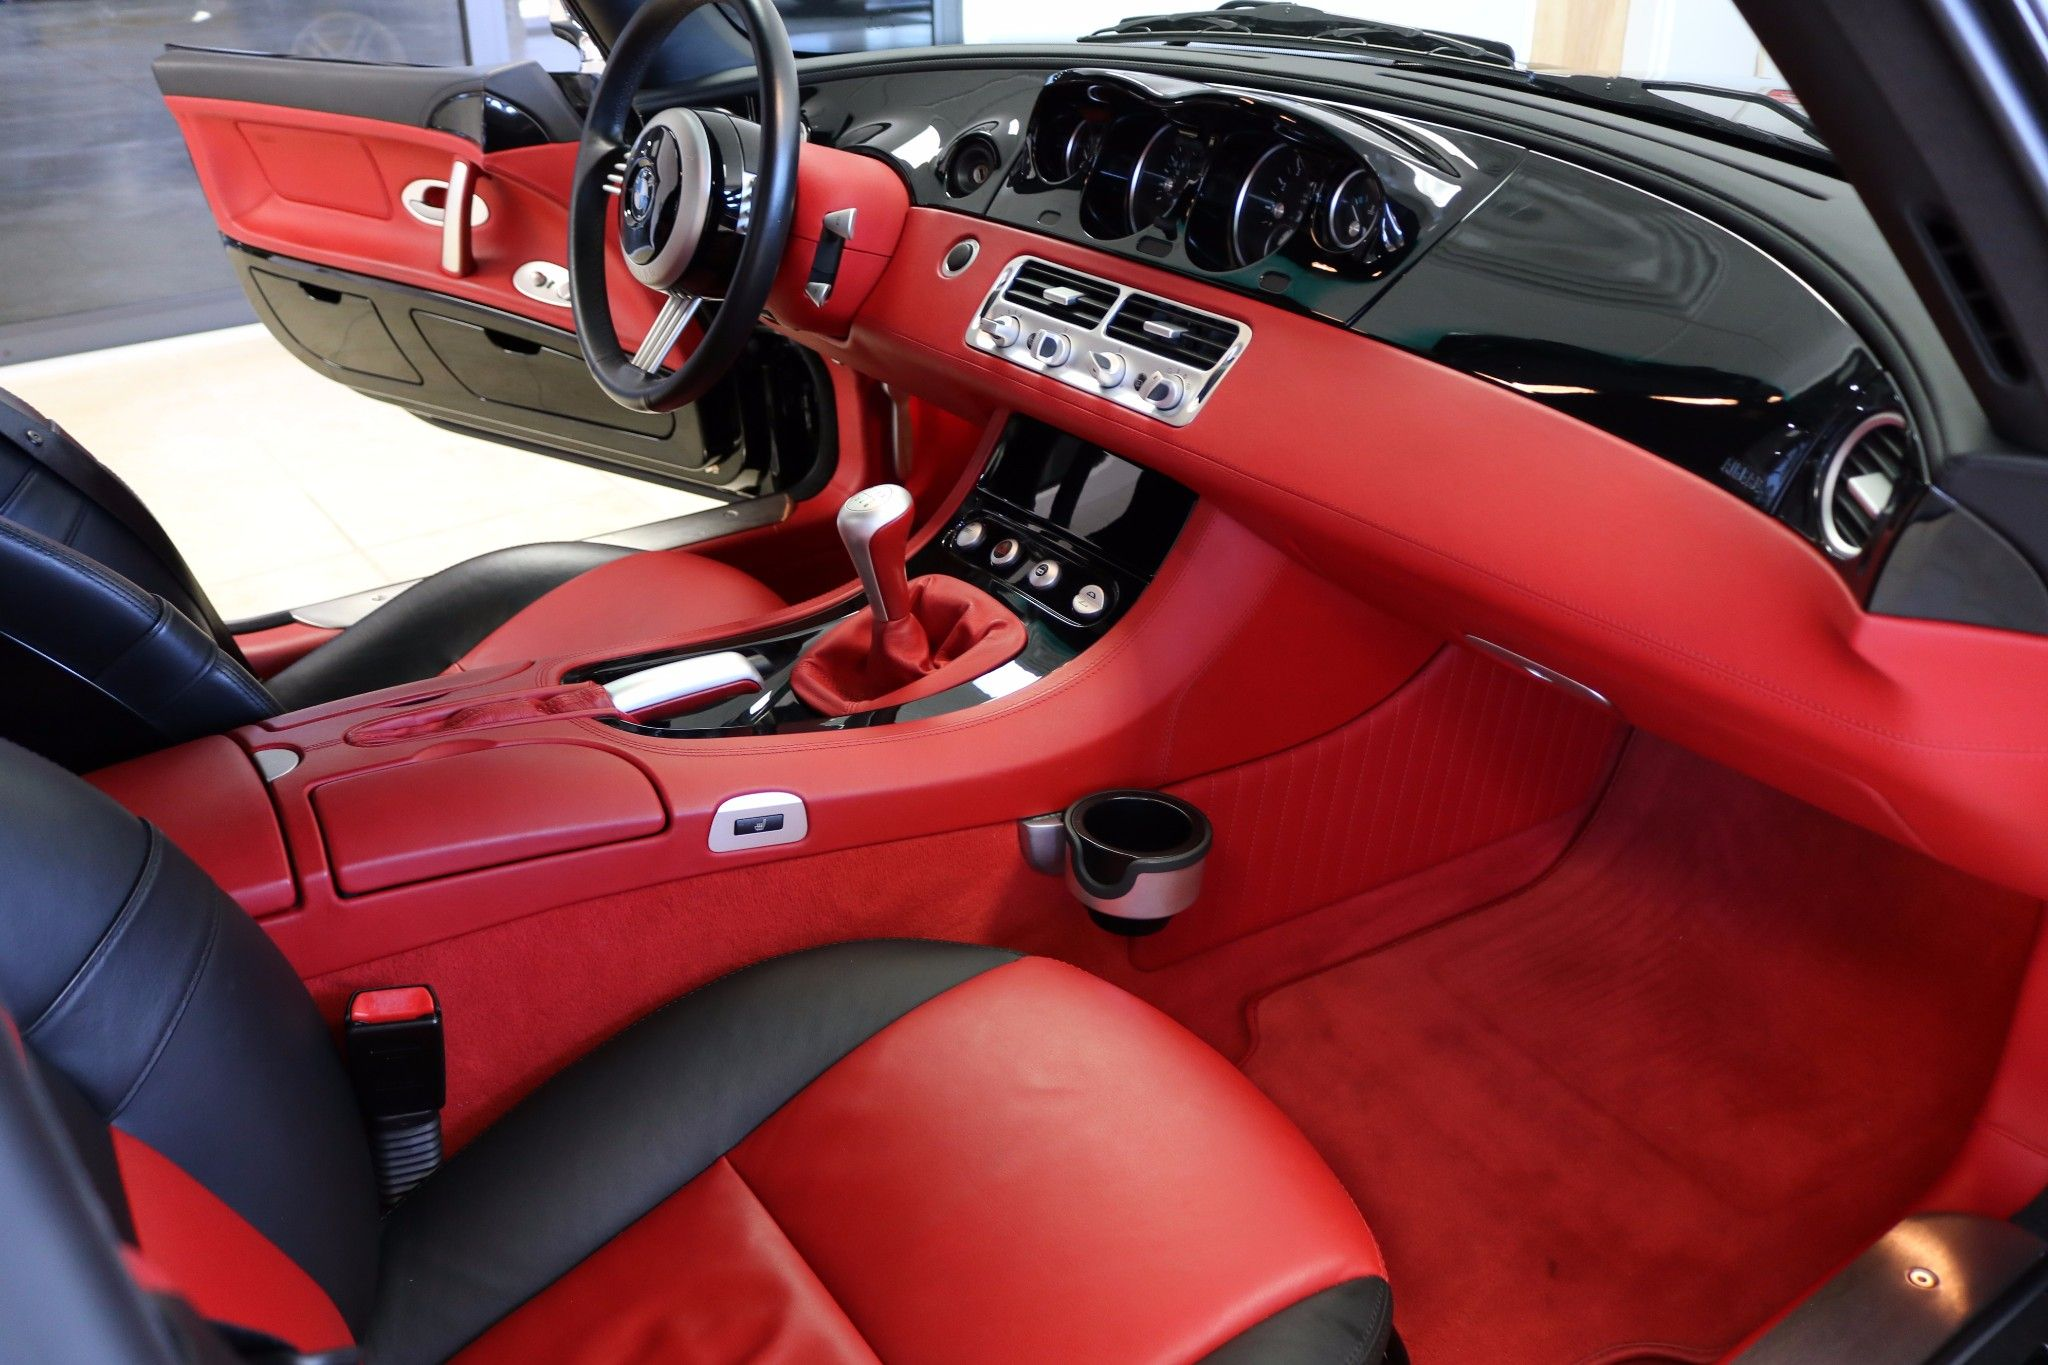 this 2001 bmw z8 has 9k miles and is a two owner example that was